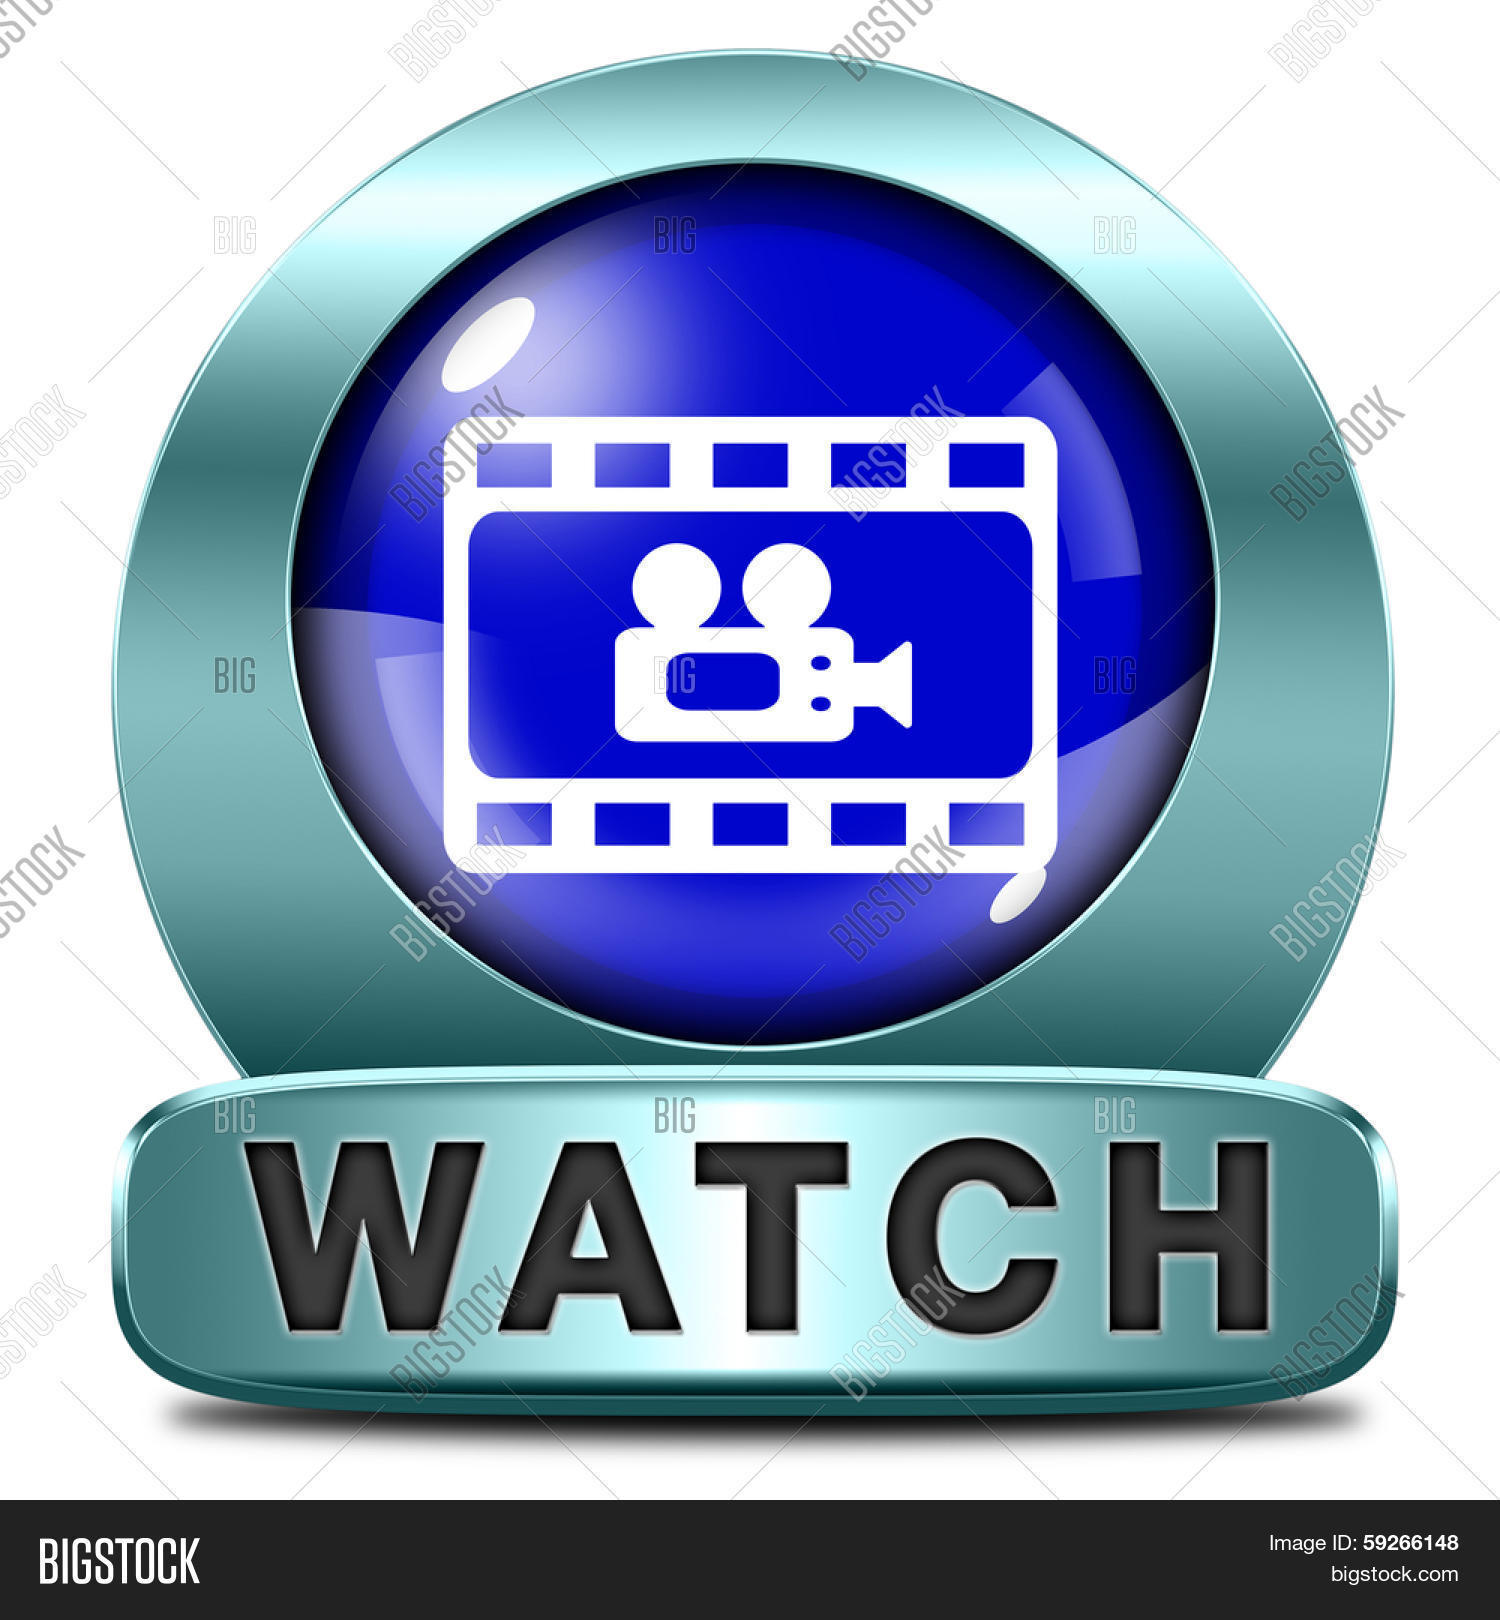 Watch sabong live streaming